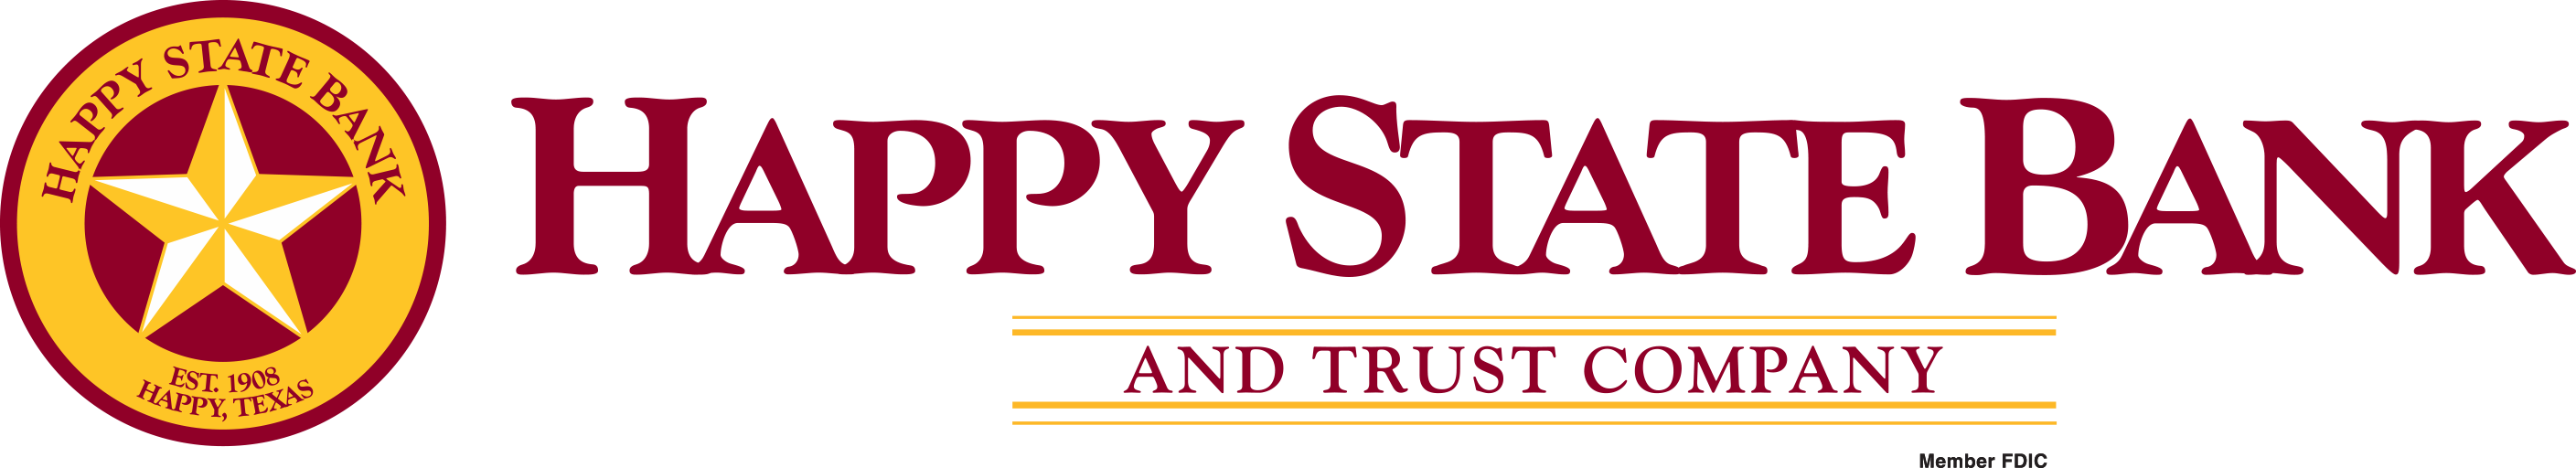 .052 Happy State Bank and Trust